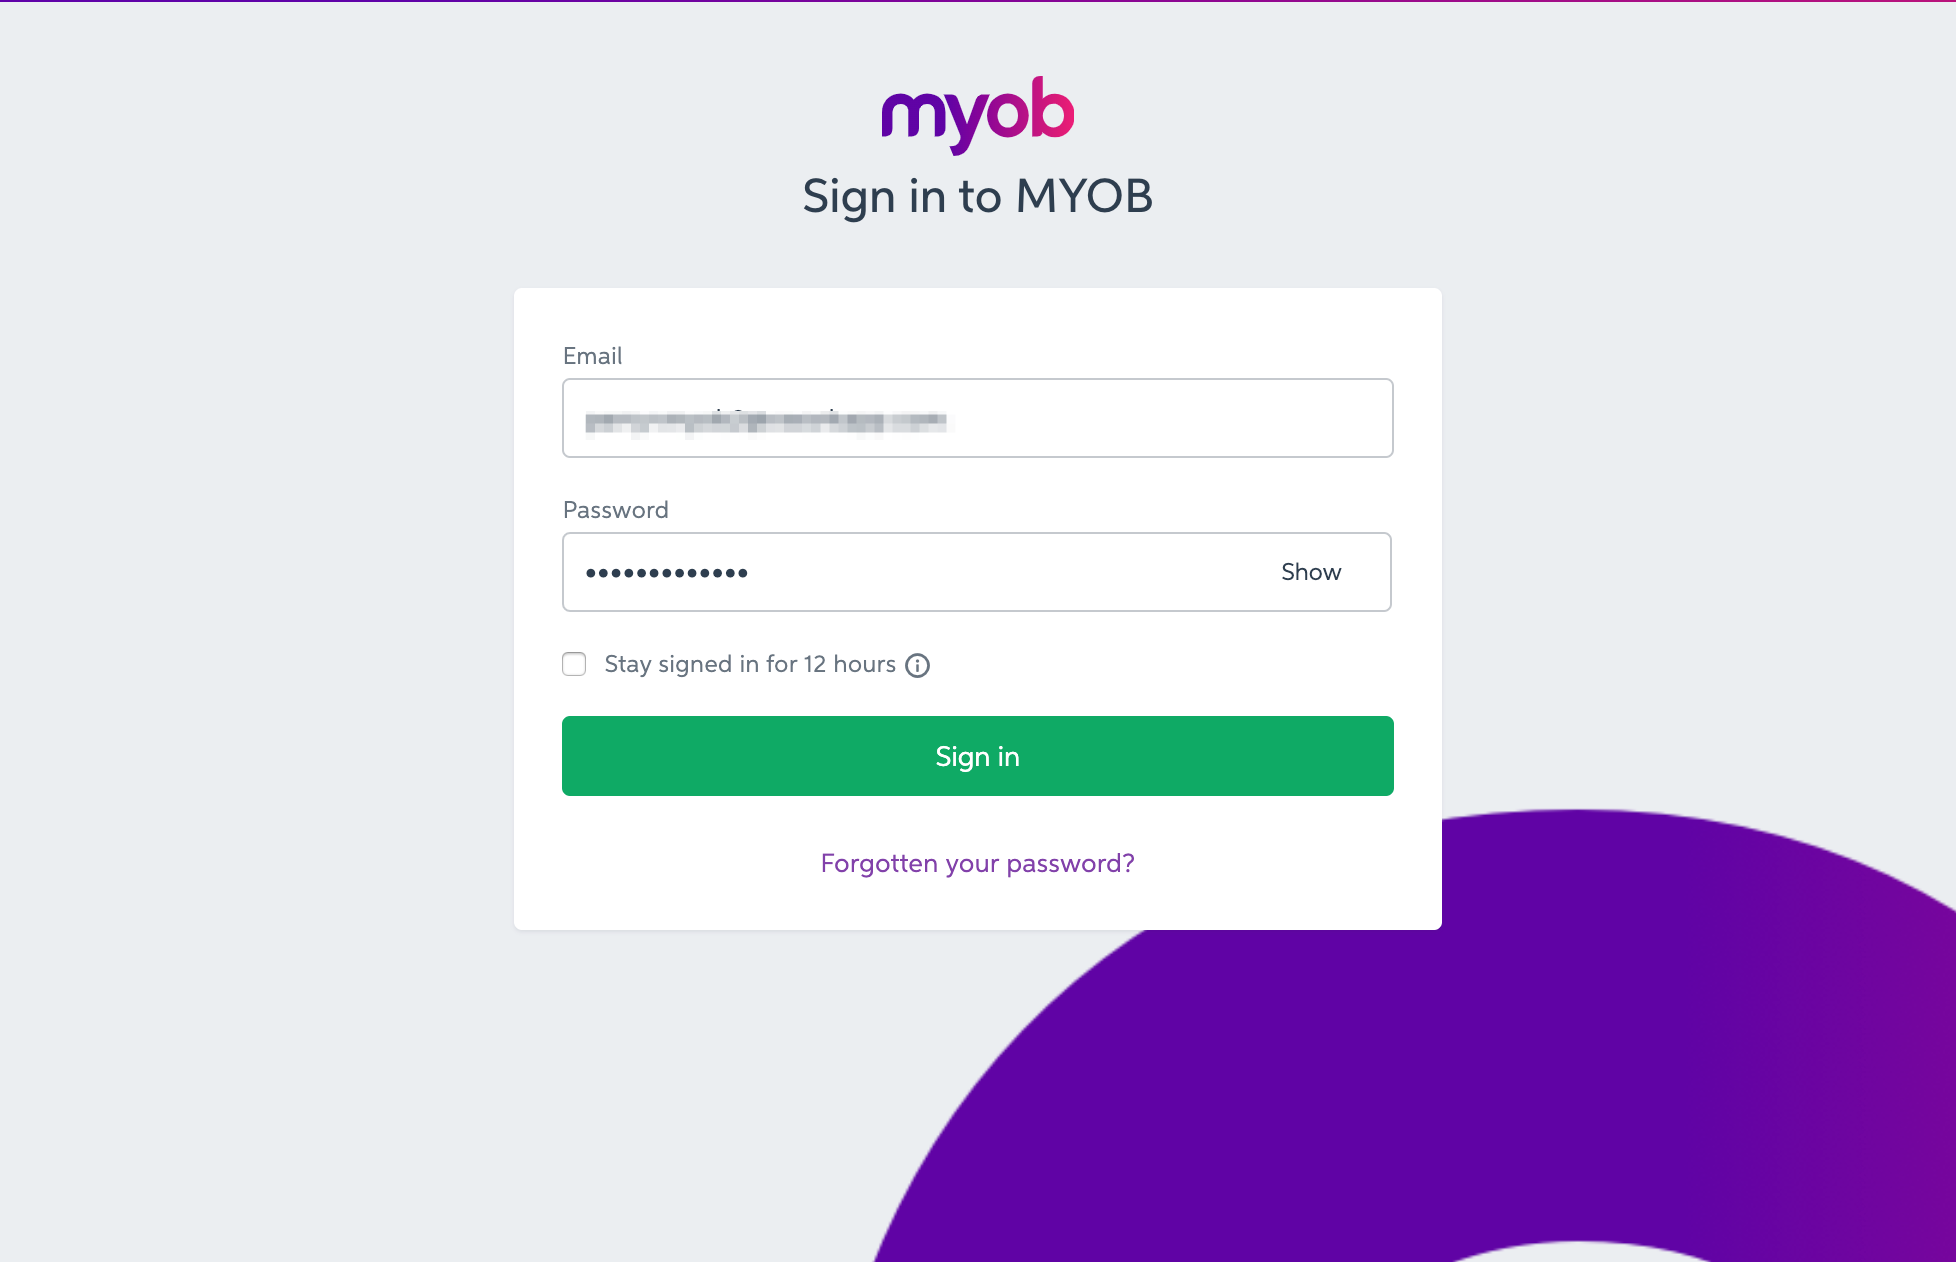 Sign_in_to_MYOB_-_MYOB.png